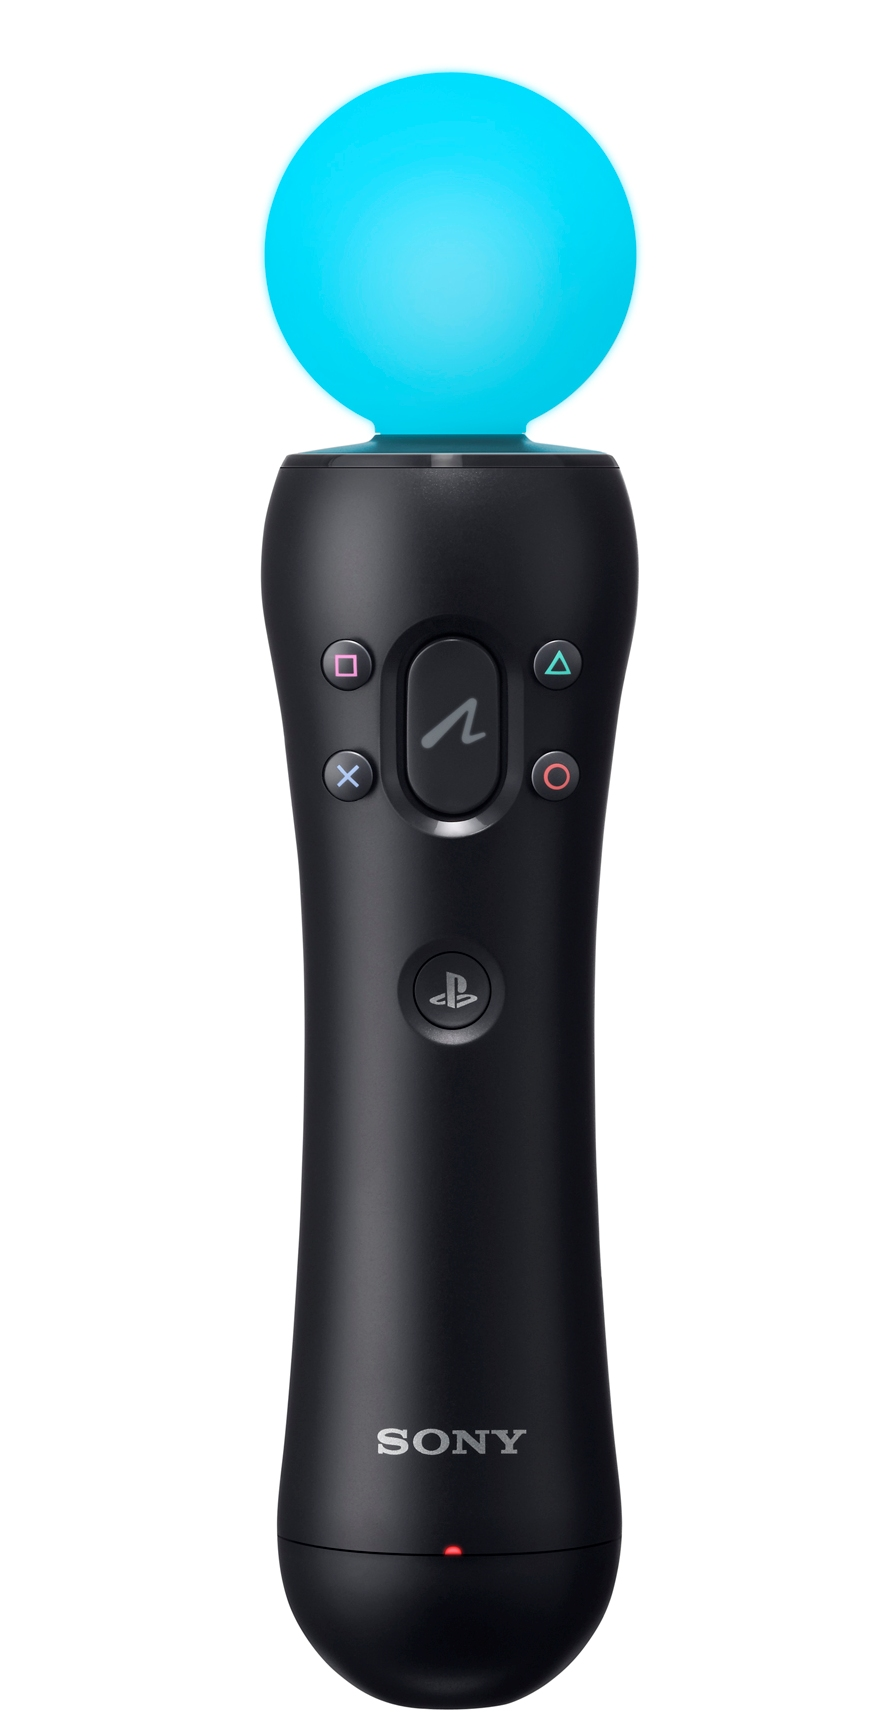 Playstation move clipart clip black and white download Download ps move controller clipart PlayStation Move ... clip black and white download